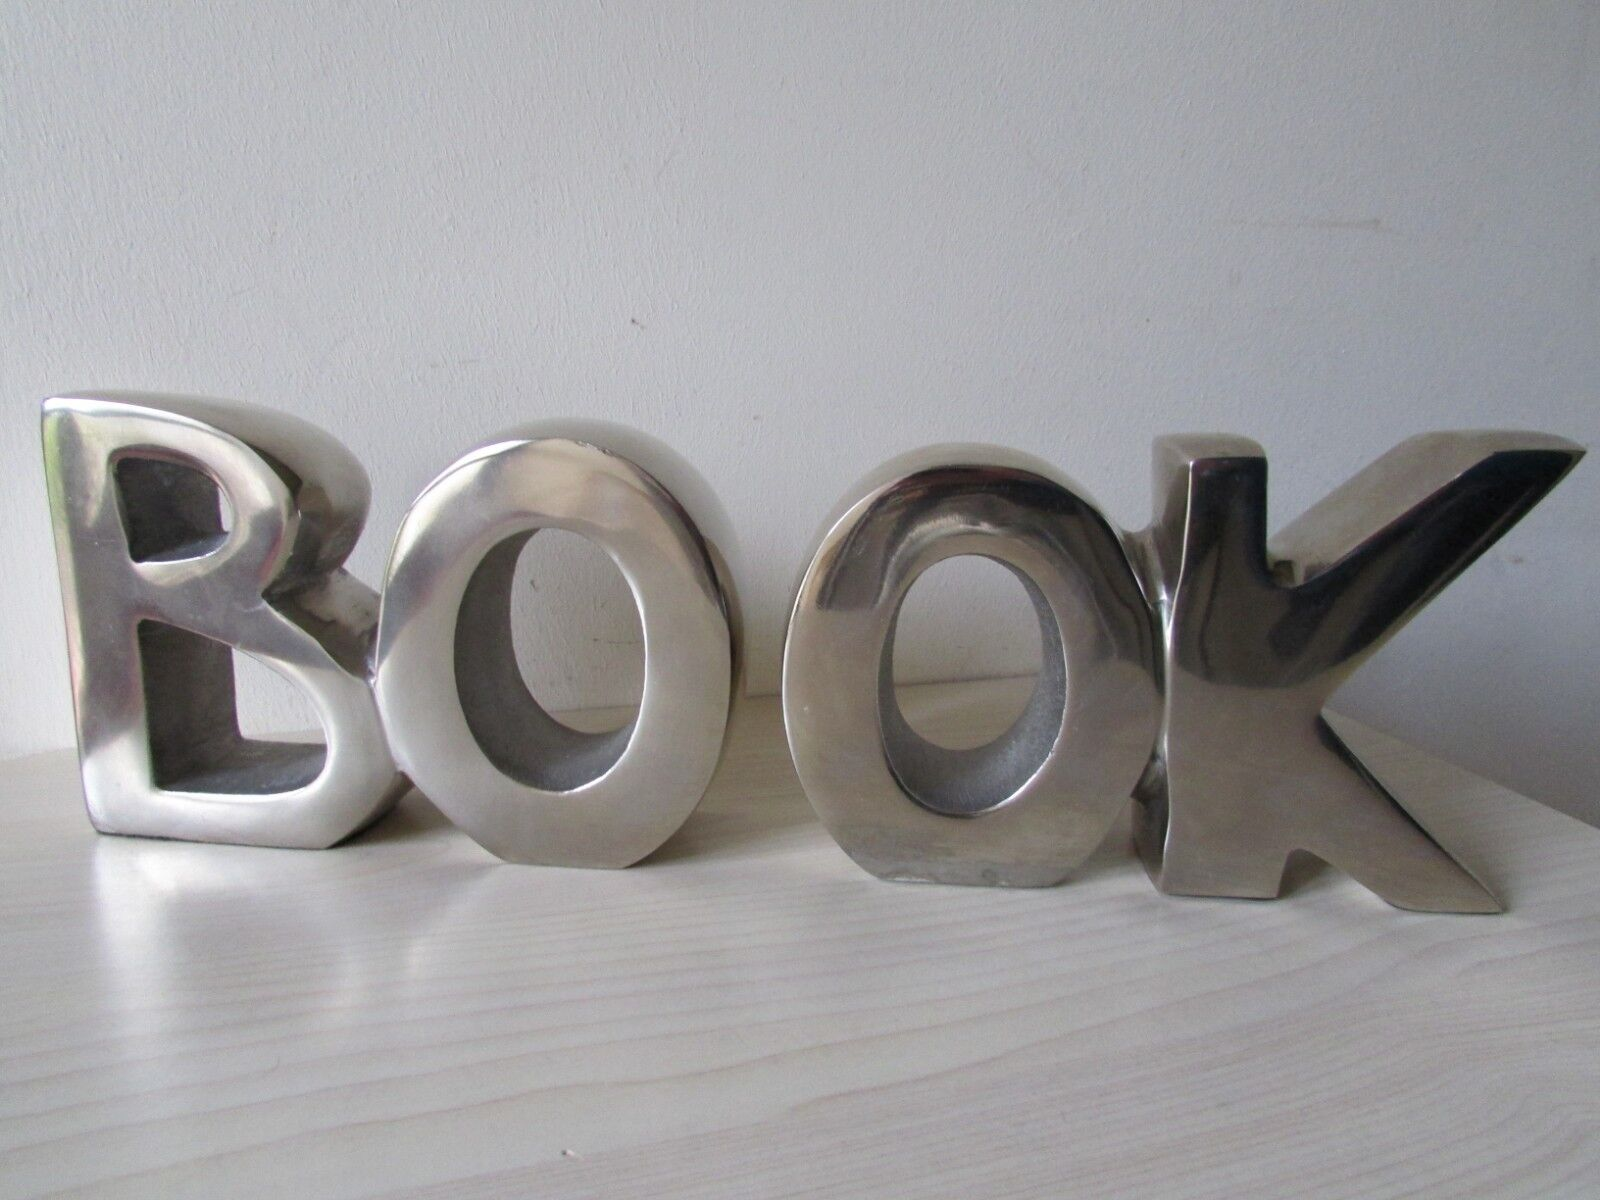 'BOOK' SOLID CAST ALUMINIUM 11.5 Cm LARGE LETTERS.